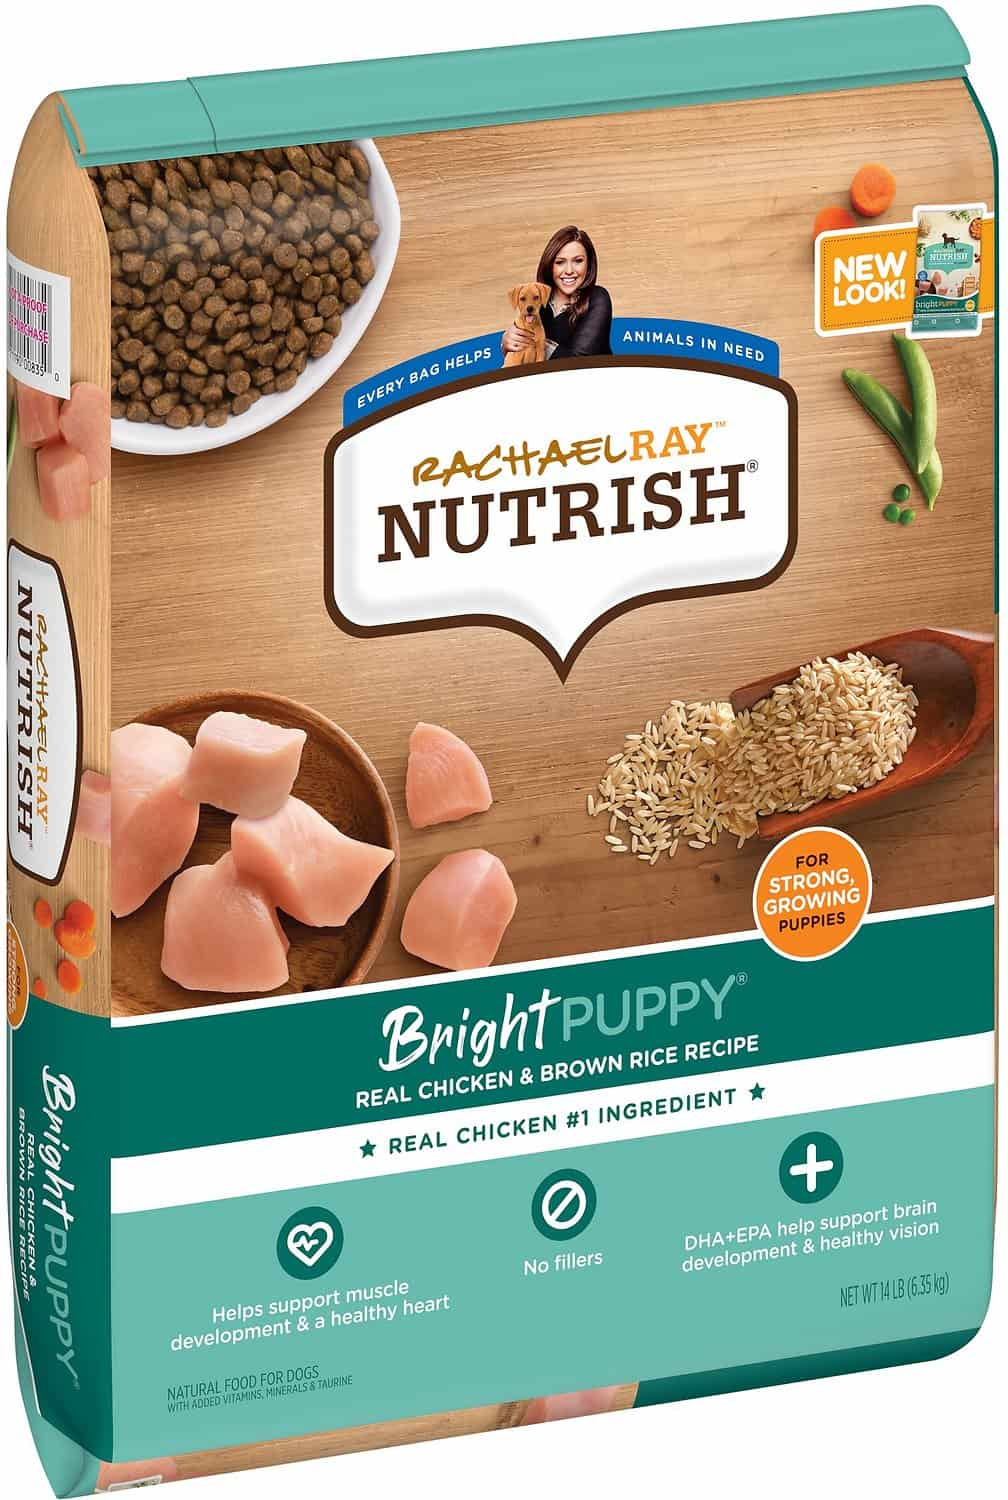 Best Puppy Food: 10 Healthy Wet & Dry Dog Food Brands for Puppies 24